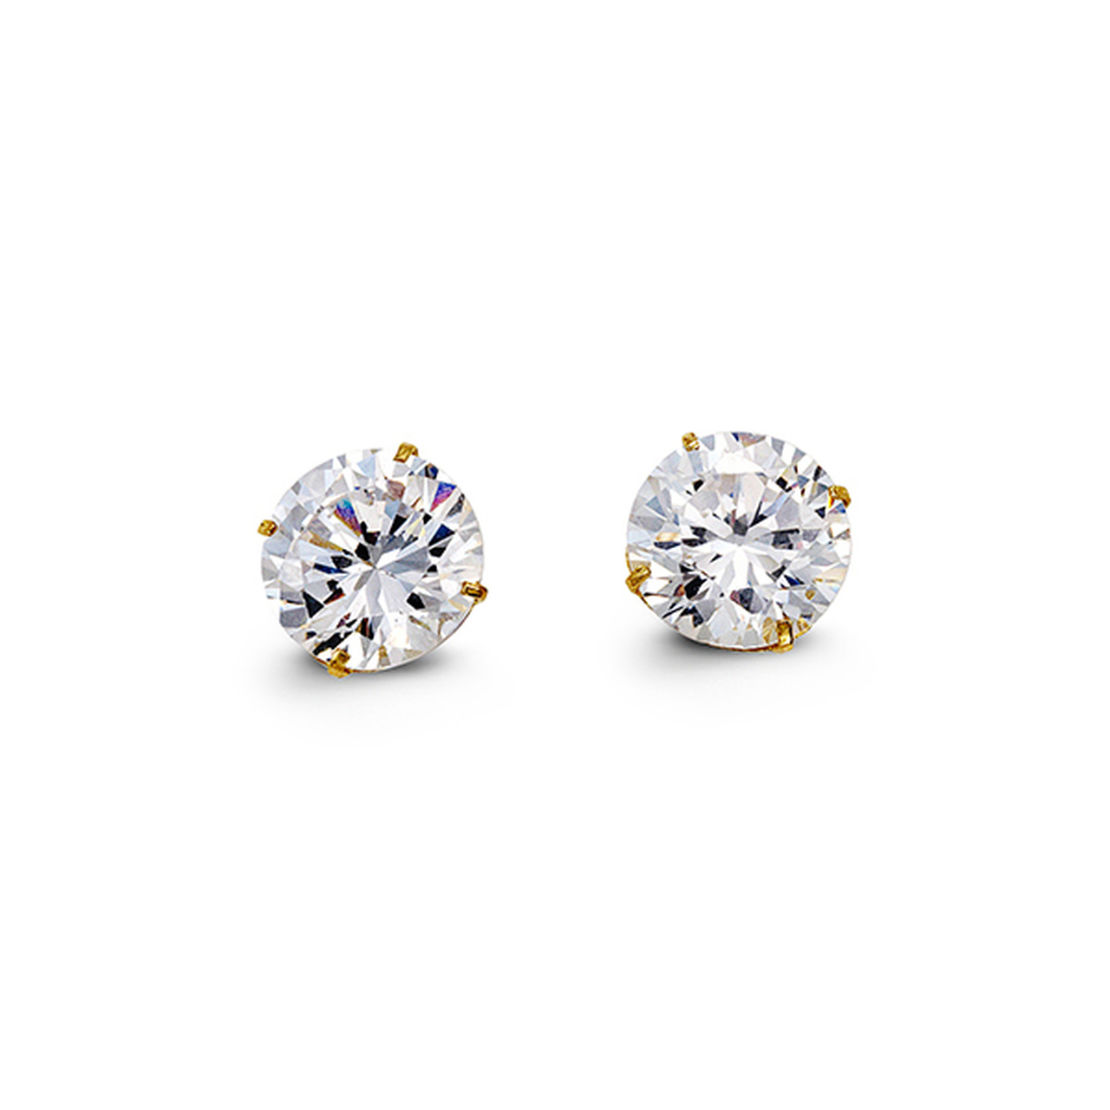 Yellow Gold Brilliant Cut Cubic Zirconia Stud Earrings